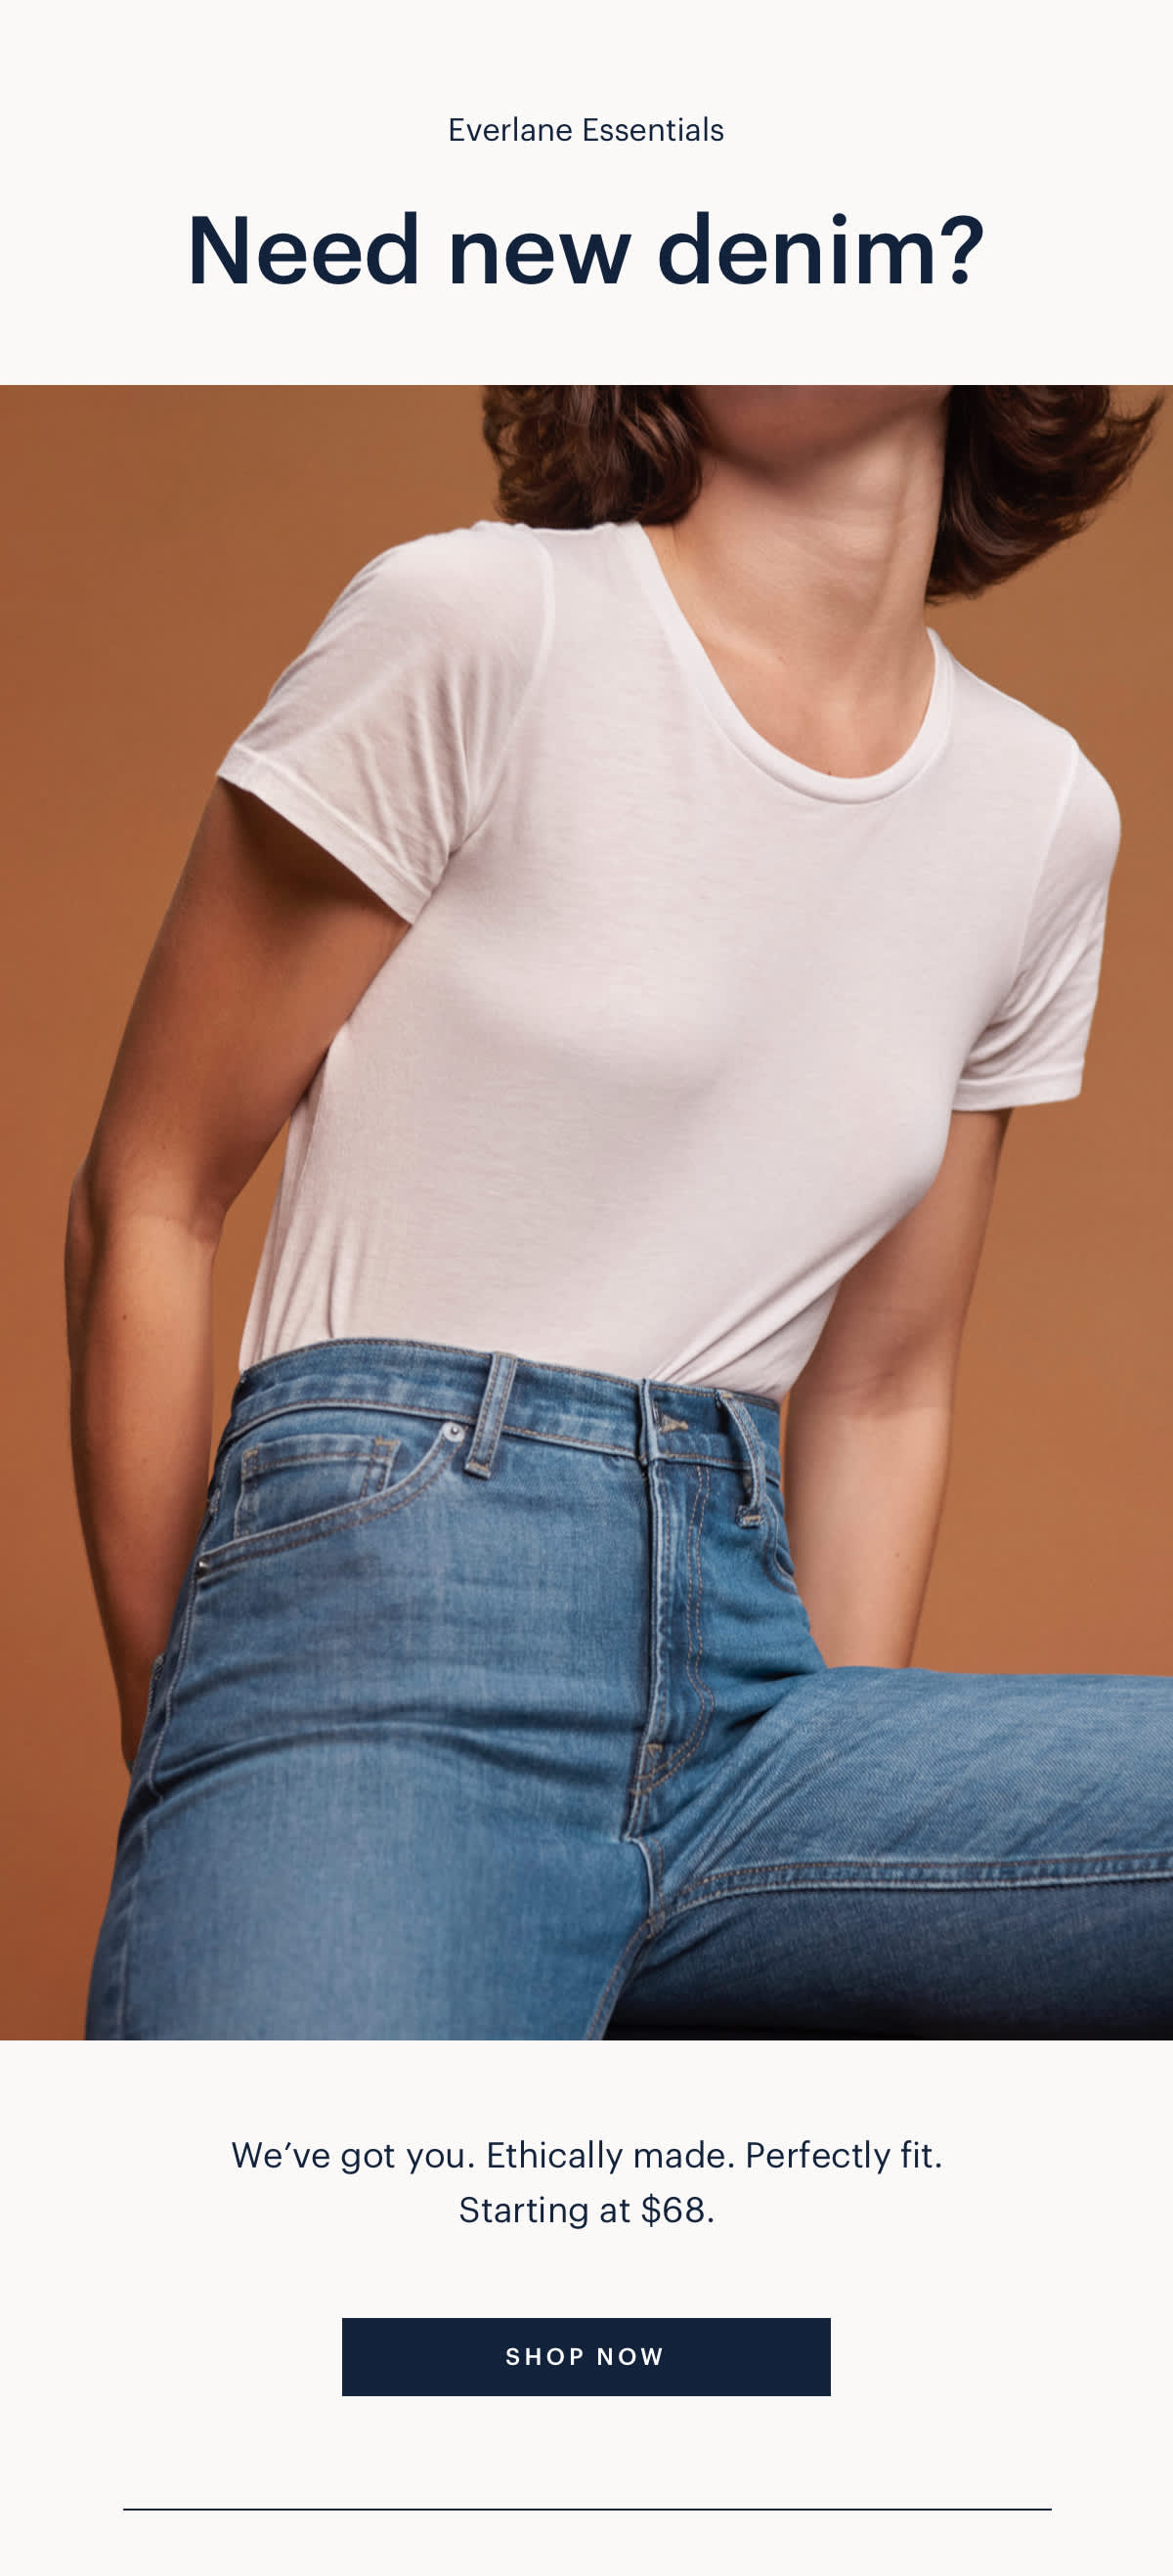 Need new denim? We've got you. Ethically made. Perfectly fit. Starting at $68.